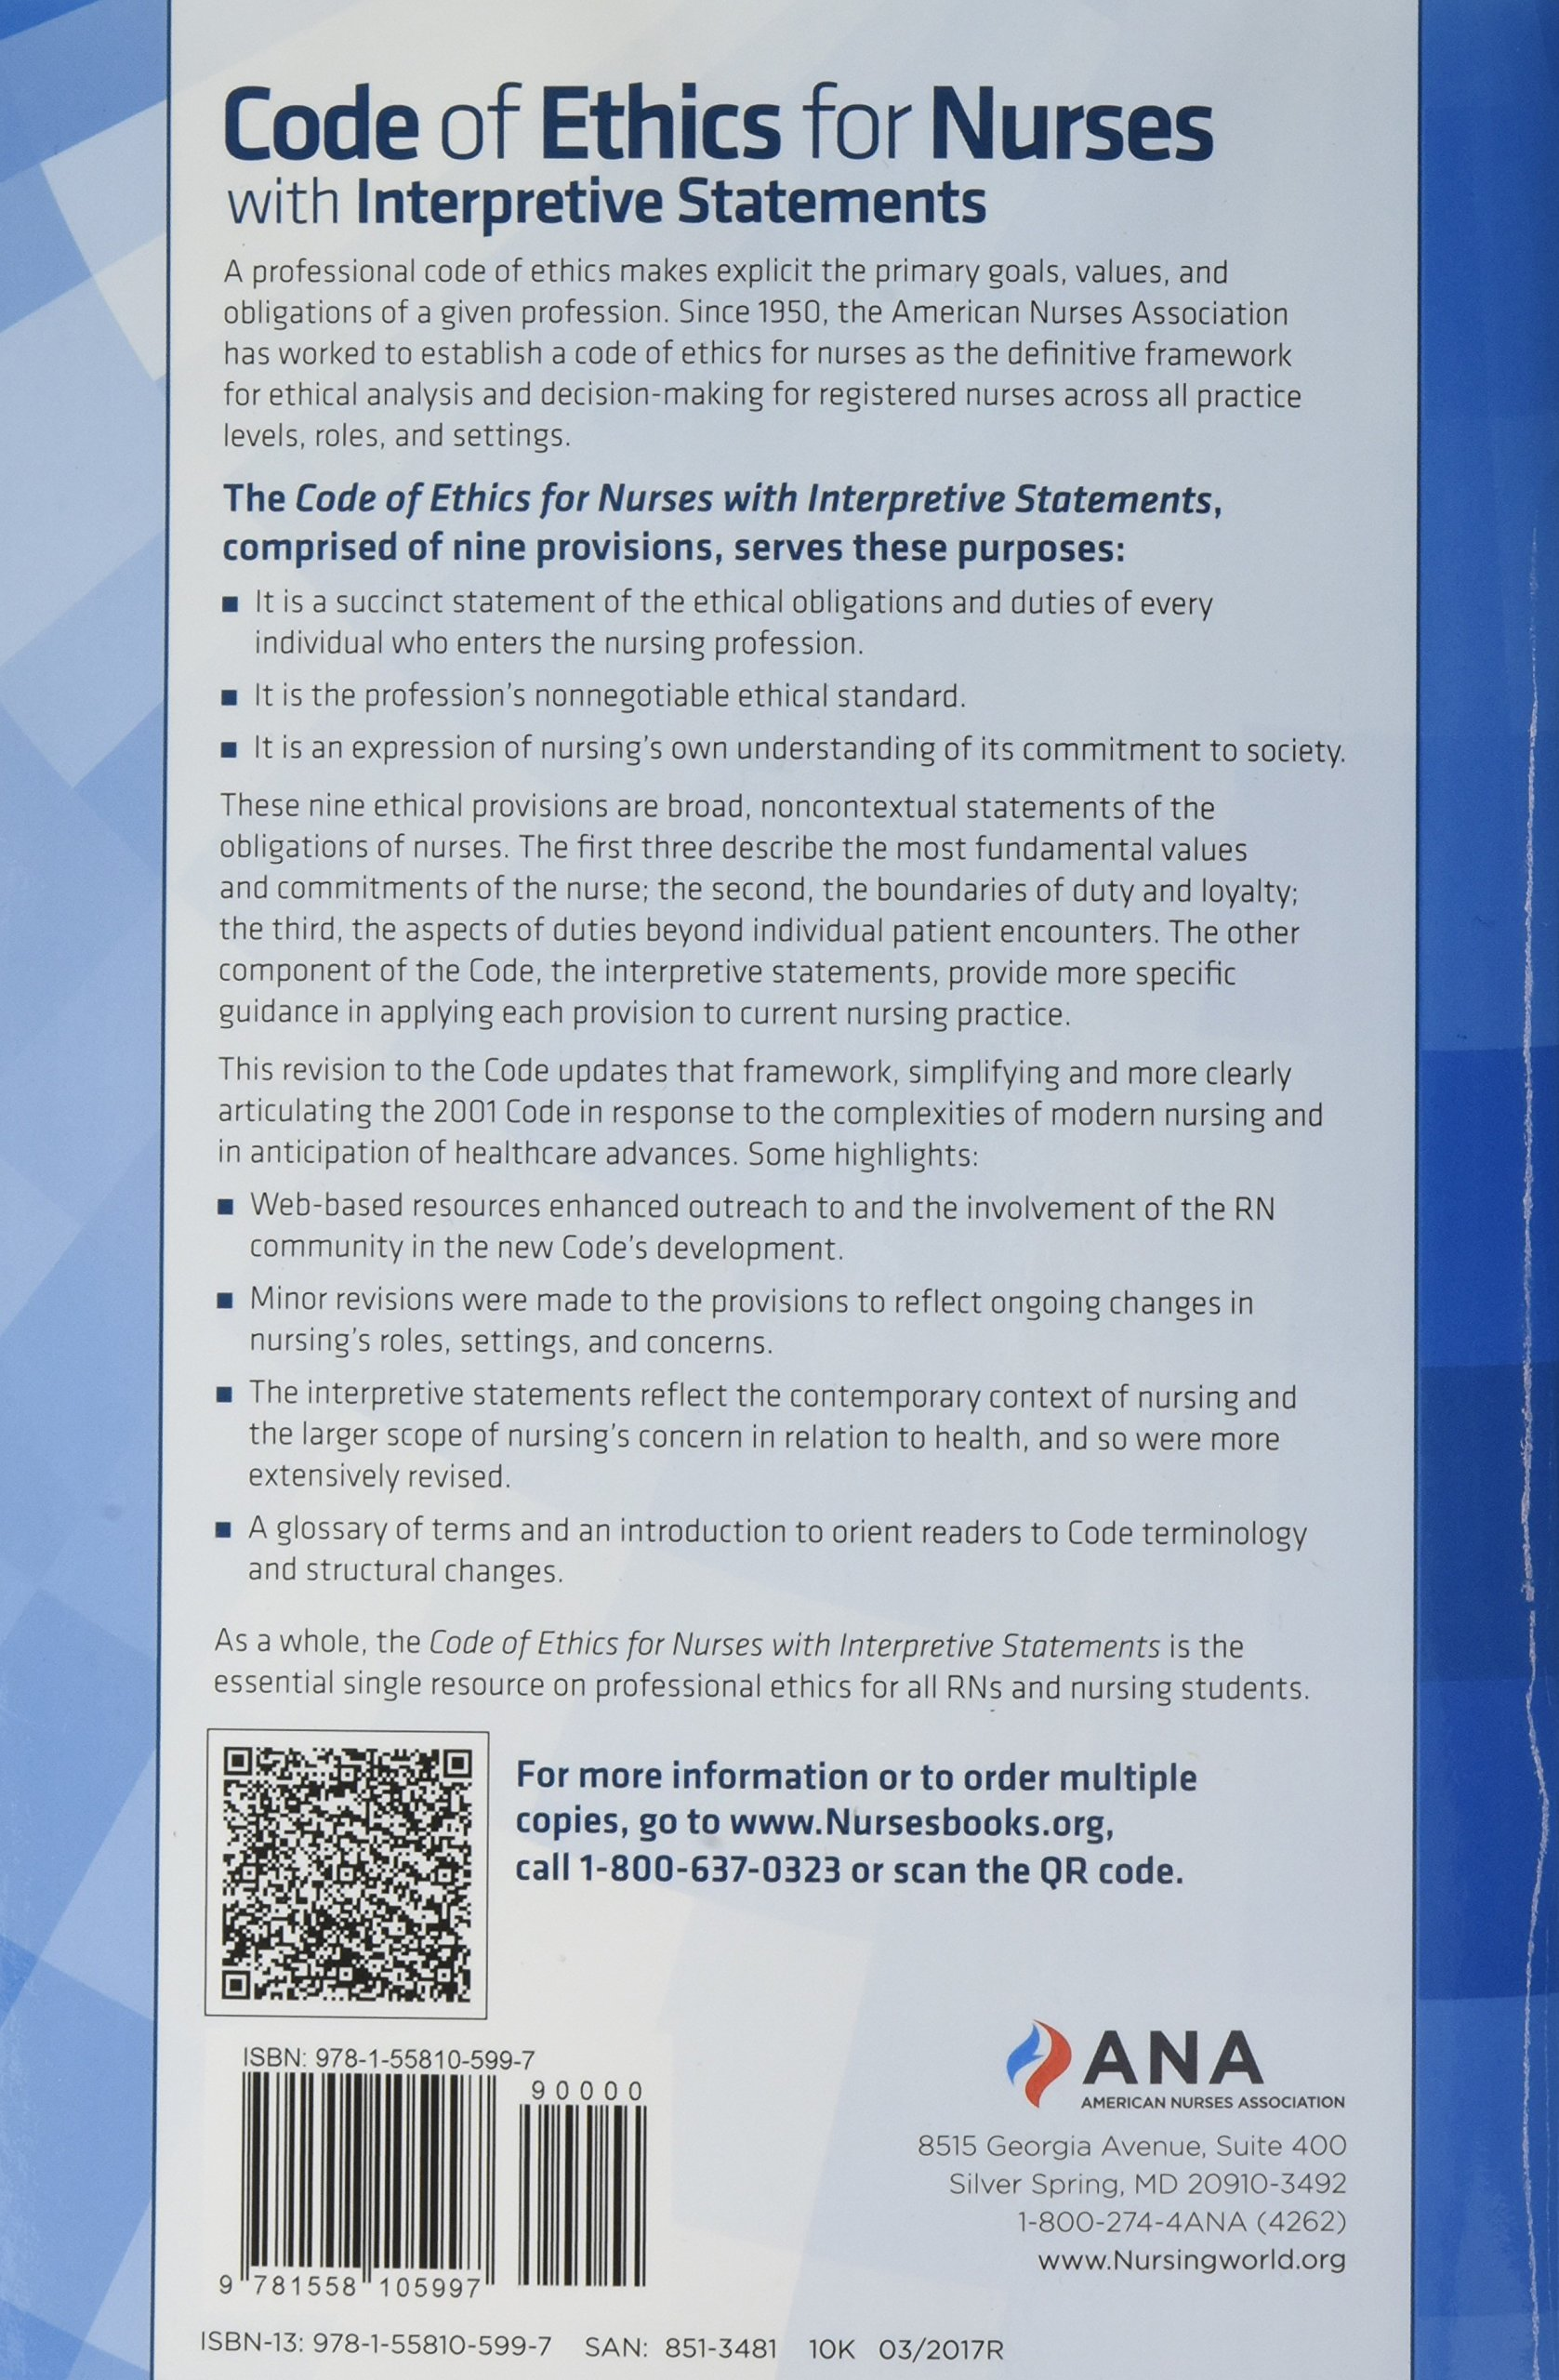 Code of Ethics for Nurses with Interpretive Statements by Amer Nurses Assn